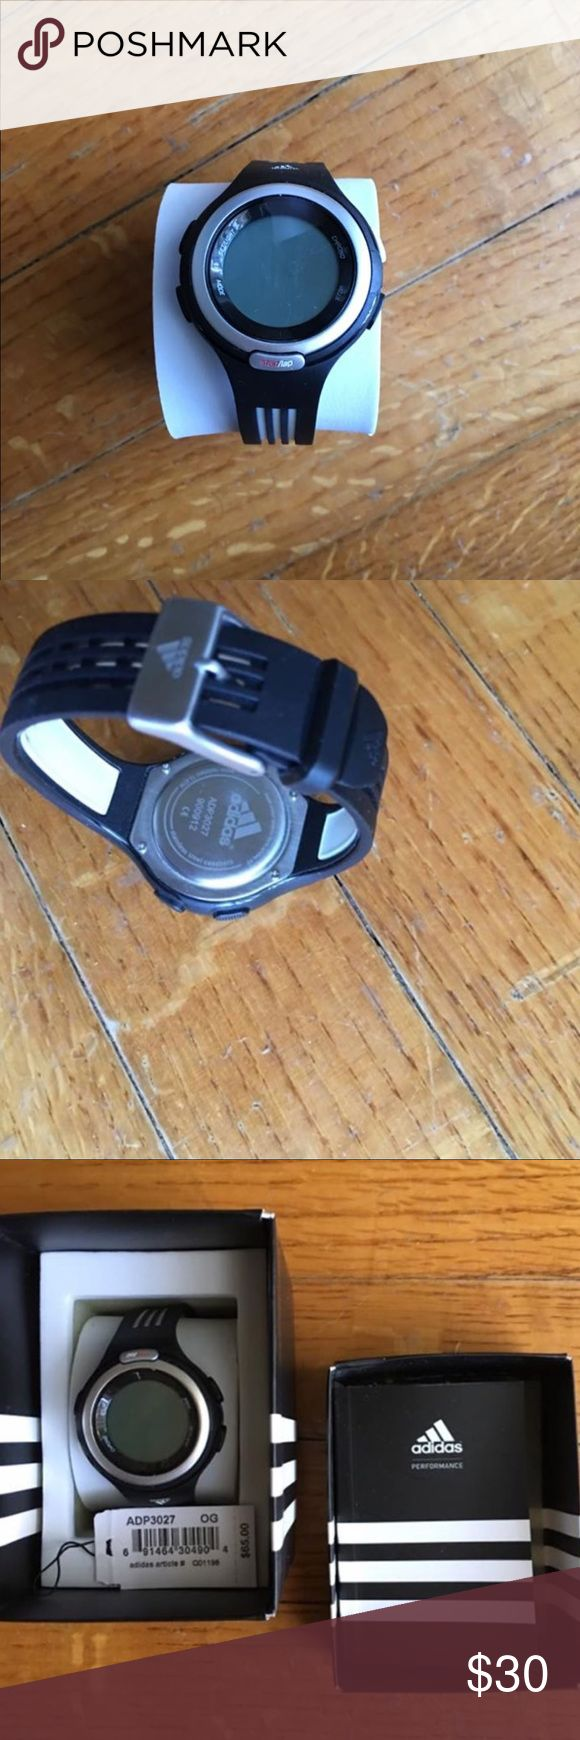 adidas ADP3027 unisex/womens sports watch Brand new with tags. Just needs a battery. Come with box, watch ring and manual. Originally $65  Battery replacement:  They are standard 3V CR2032 button cells used in car central locking/alarm fobs. Costs around $4-5 but having a jeweler do it for around $15 is usually easier. adidas Accessories Watches